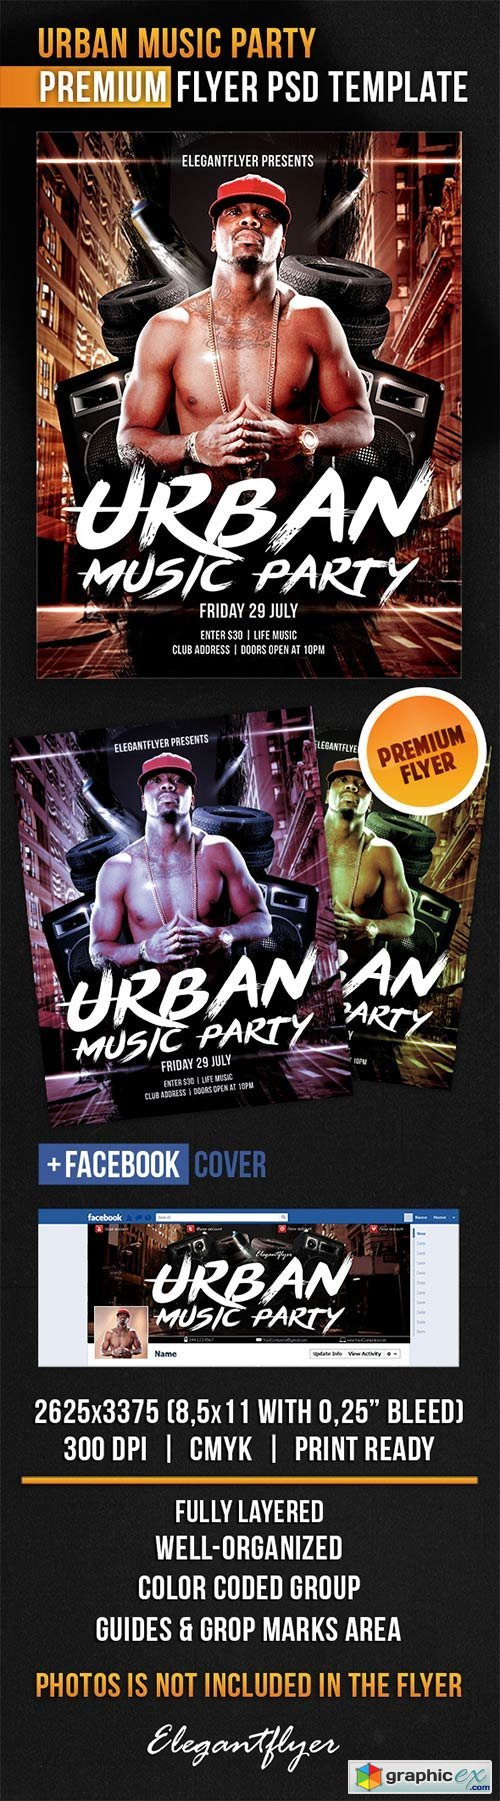 Urban Music Party Flyer PSD Template + Facebook Cover